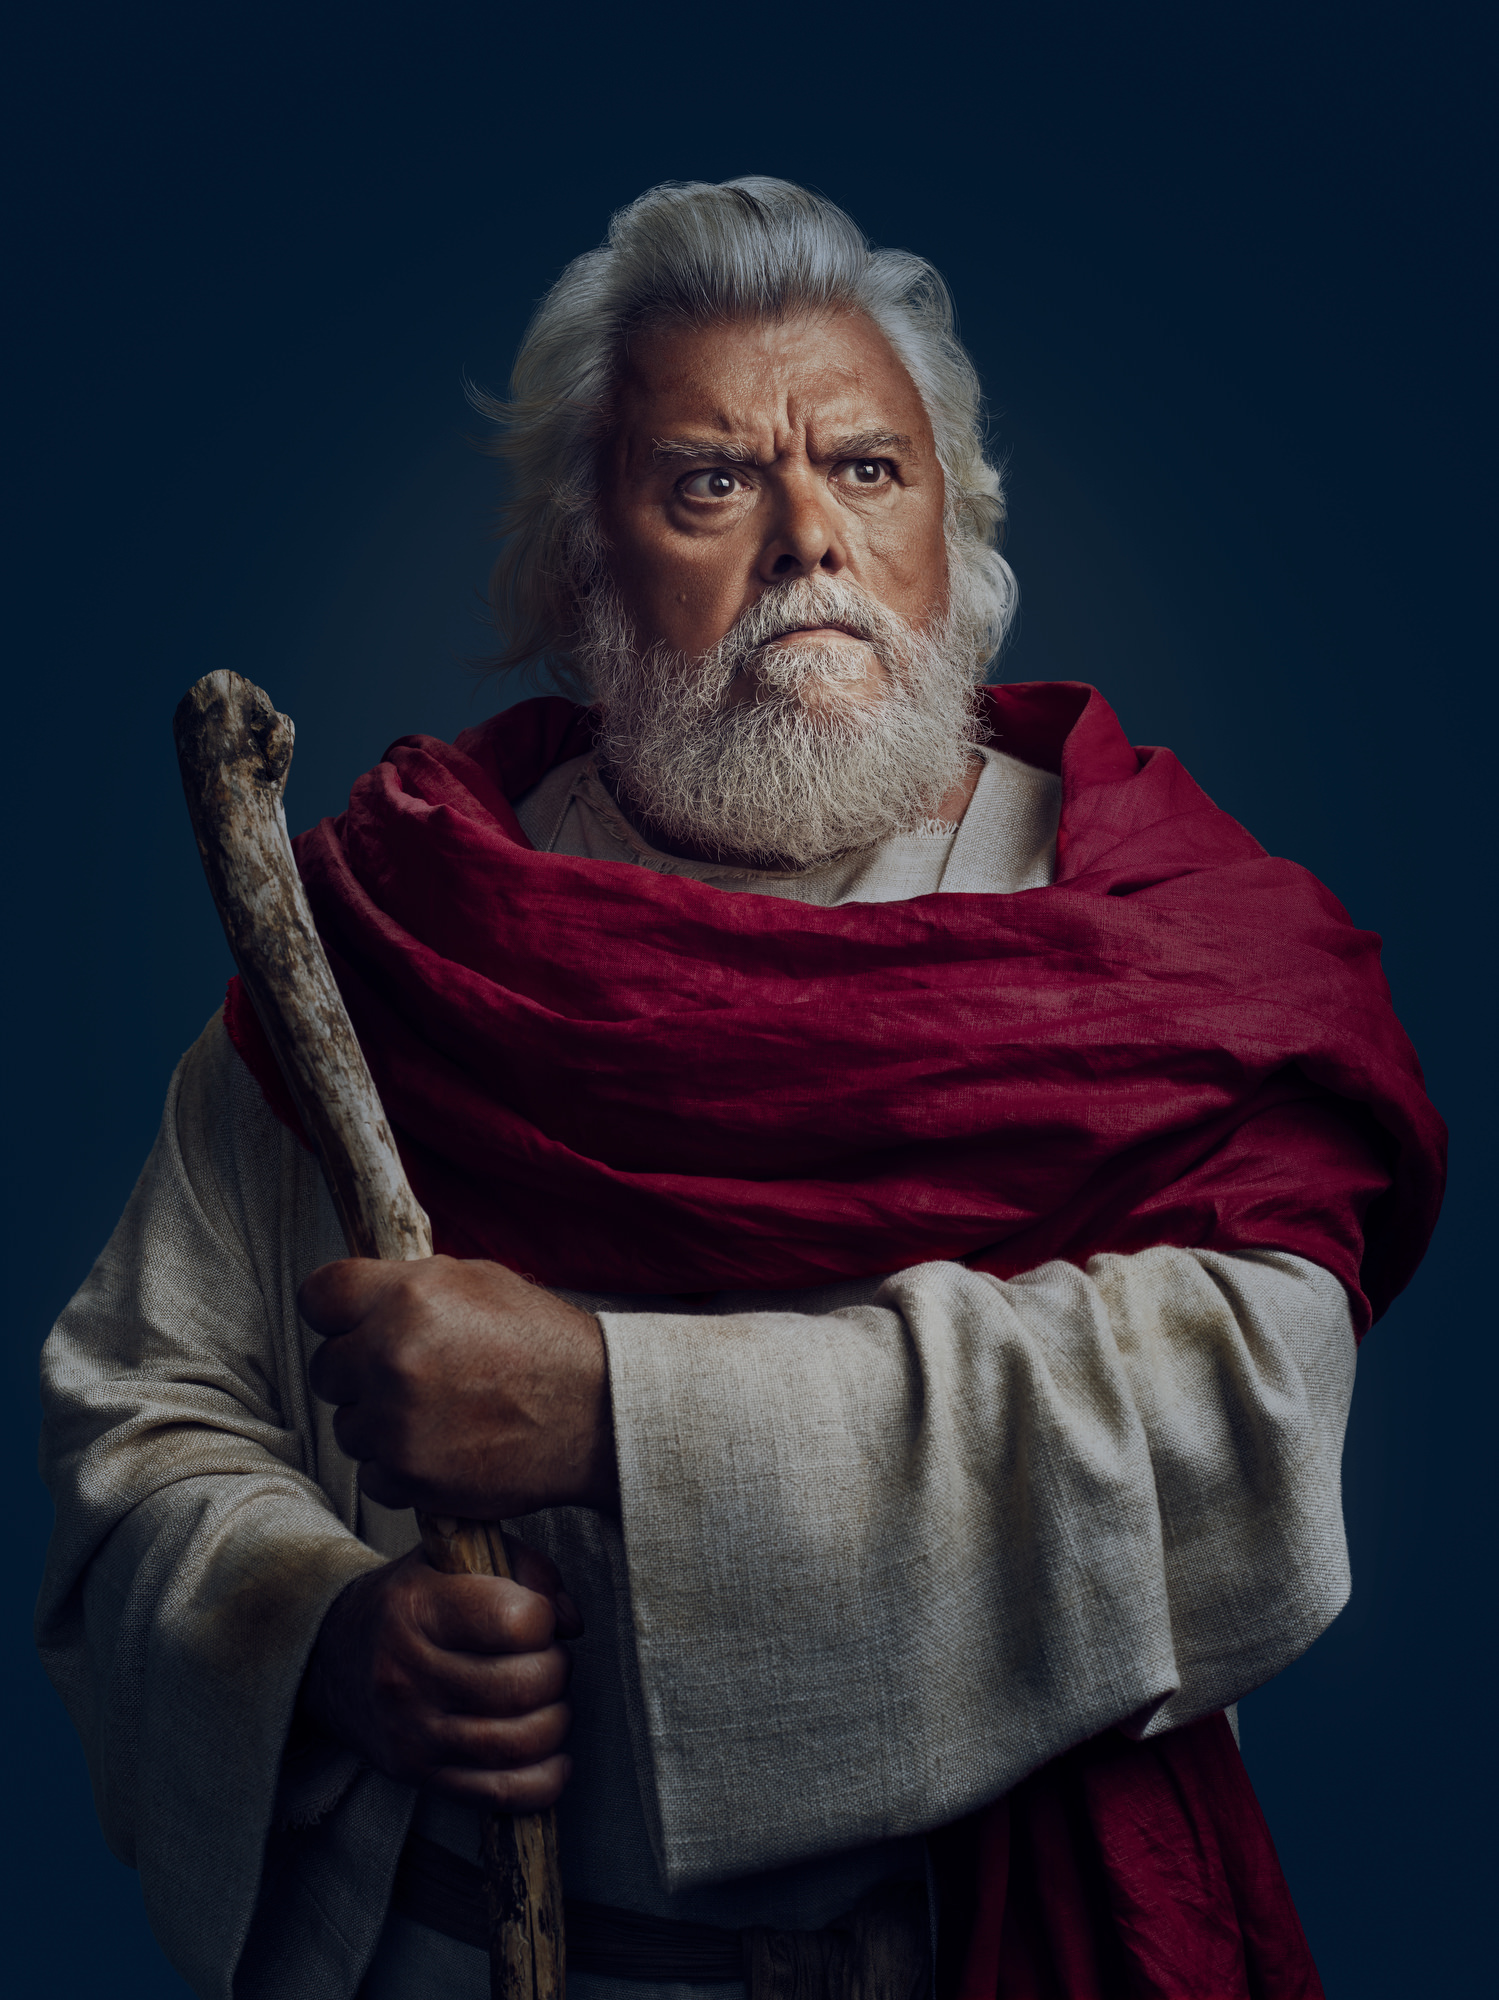 Moses Portrait for The Incredible Egg Dinner Egg ad campaign by John Keatley